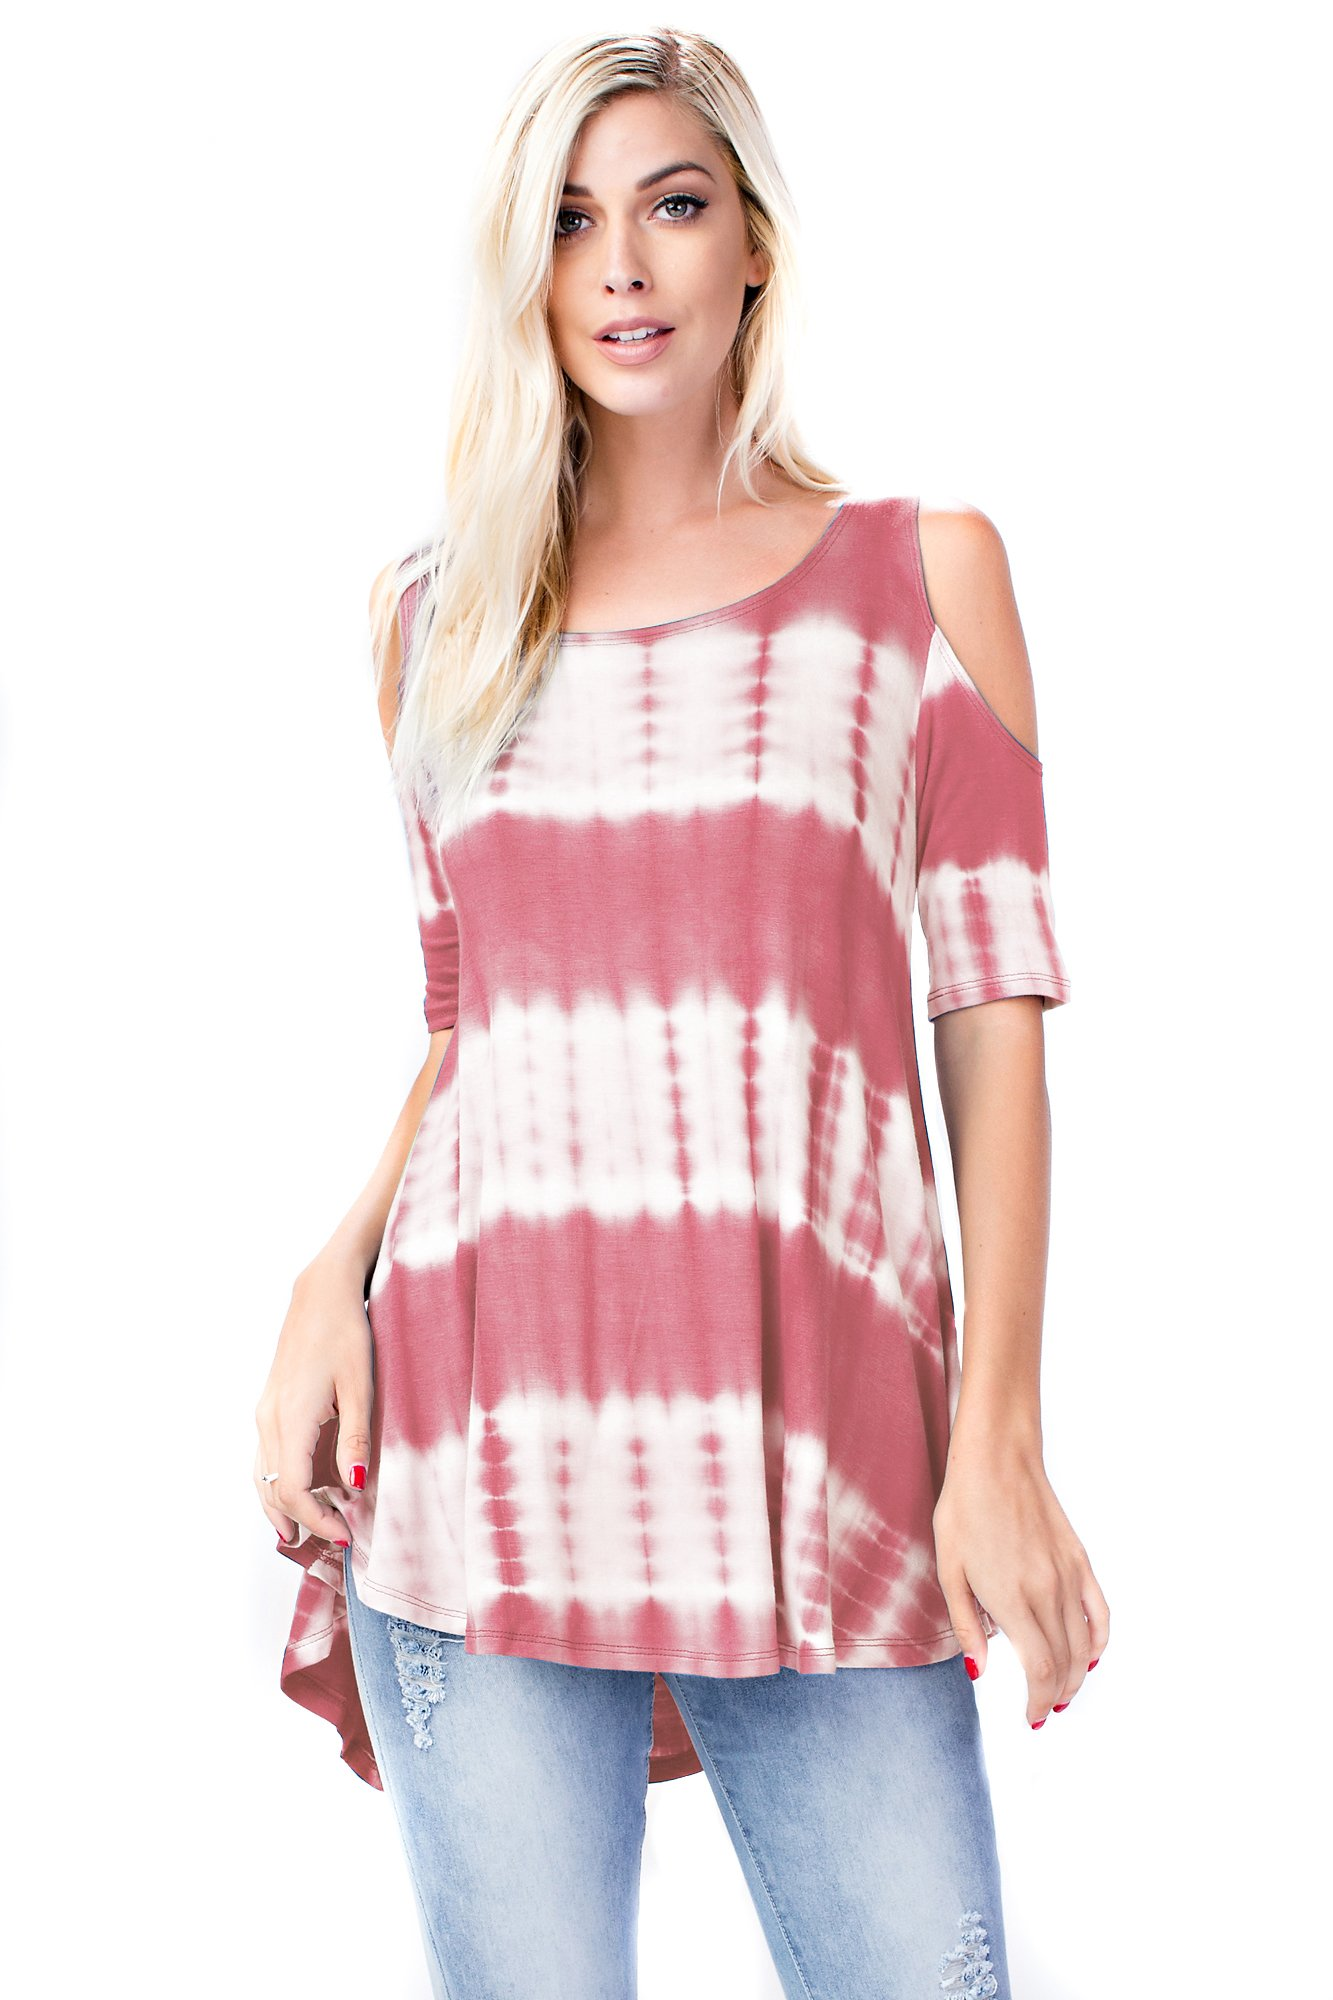 Betsy Red Couture Women's Tie Dye Soft Knit Tunic Top (S-3X) (2X, Punch Red Tie-dye)